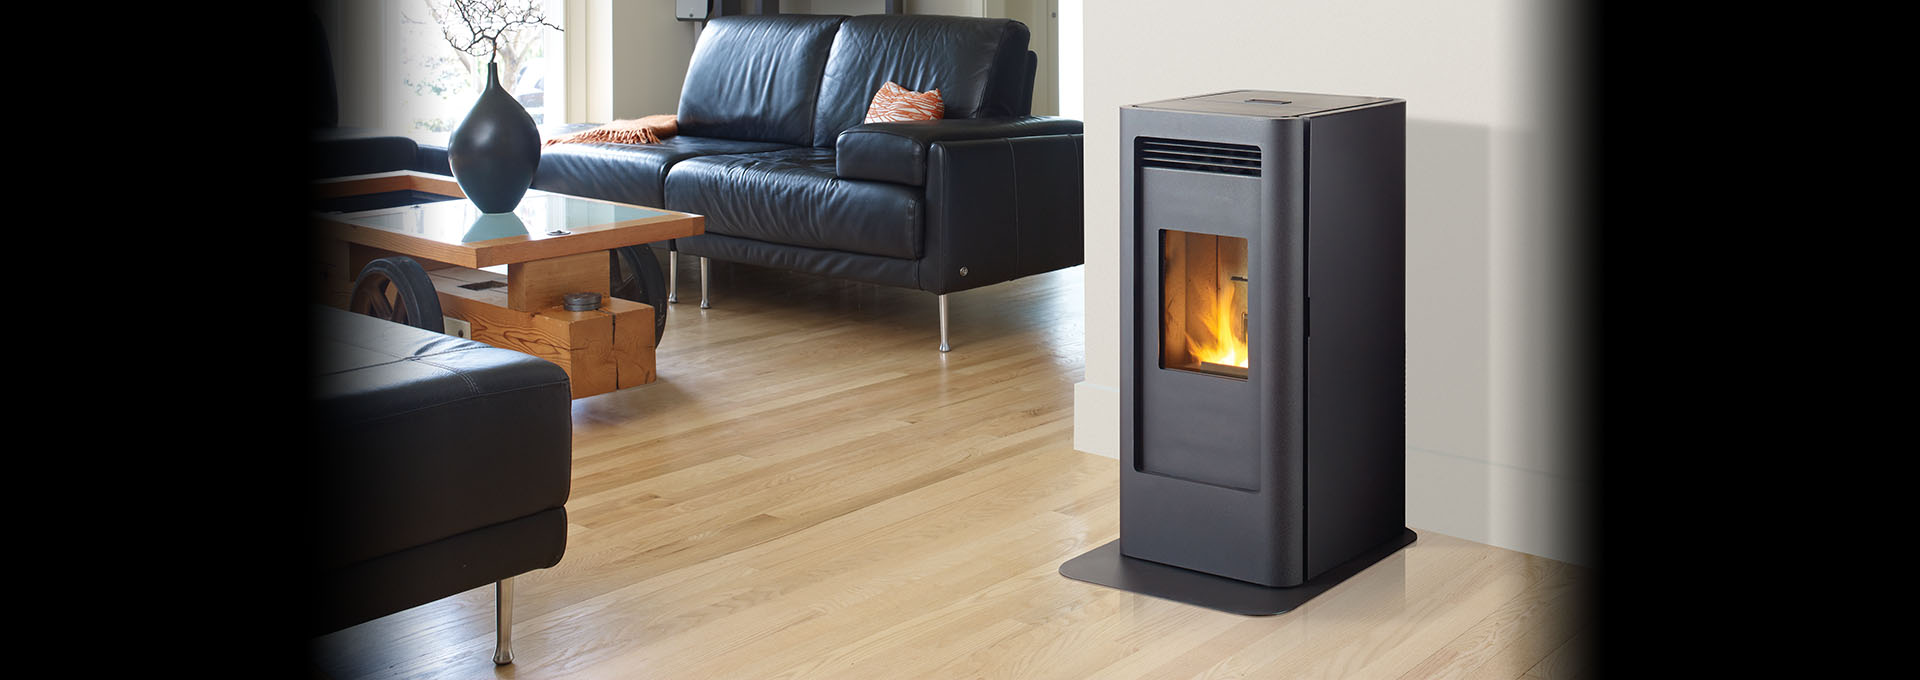 Greenfire Gf40 Modern Compact Pellet Stove Regency Fireplace Products